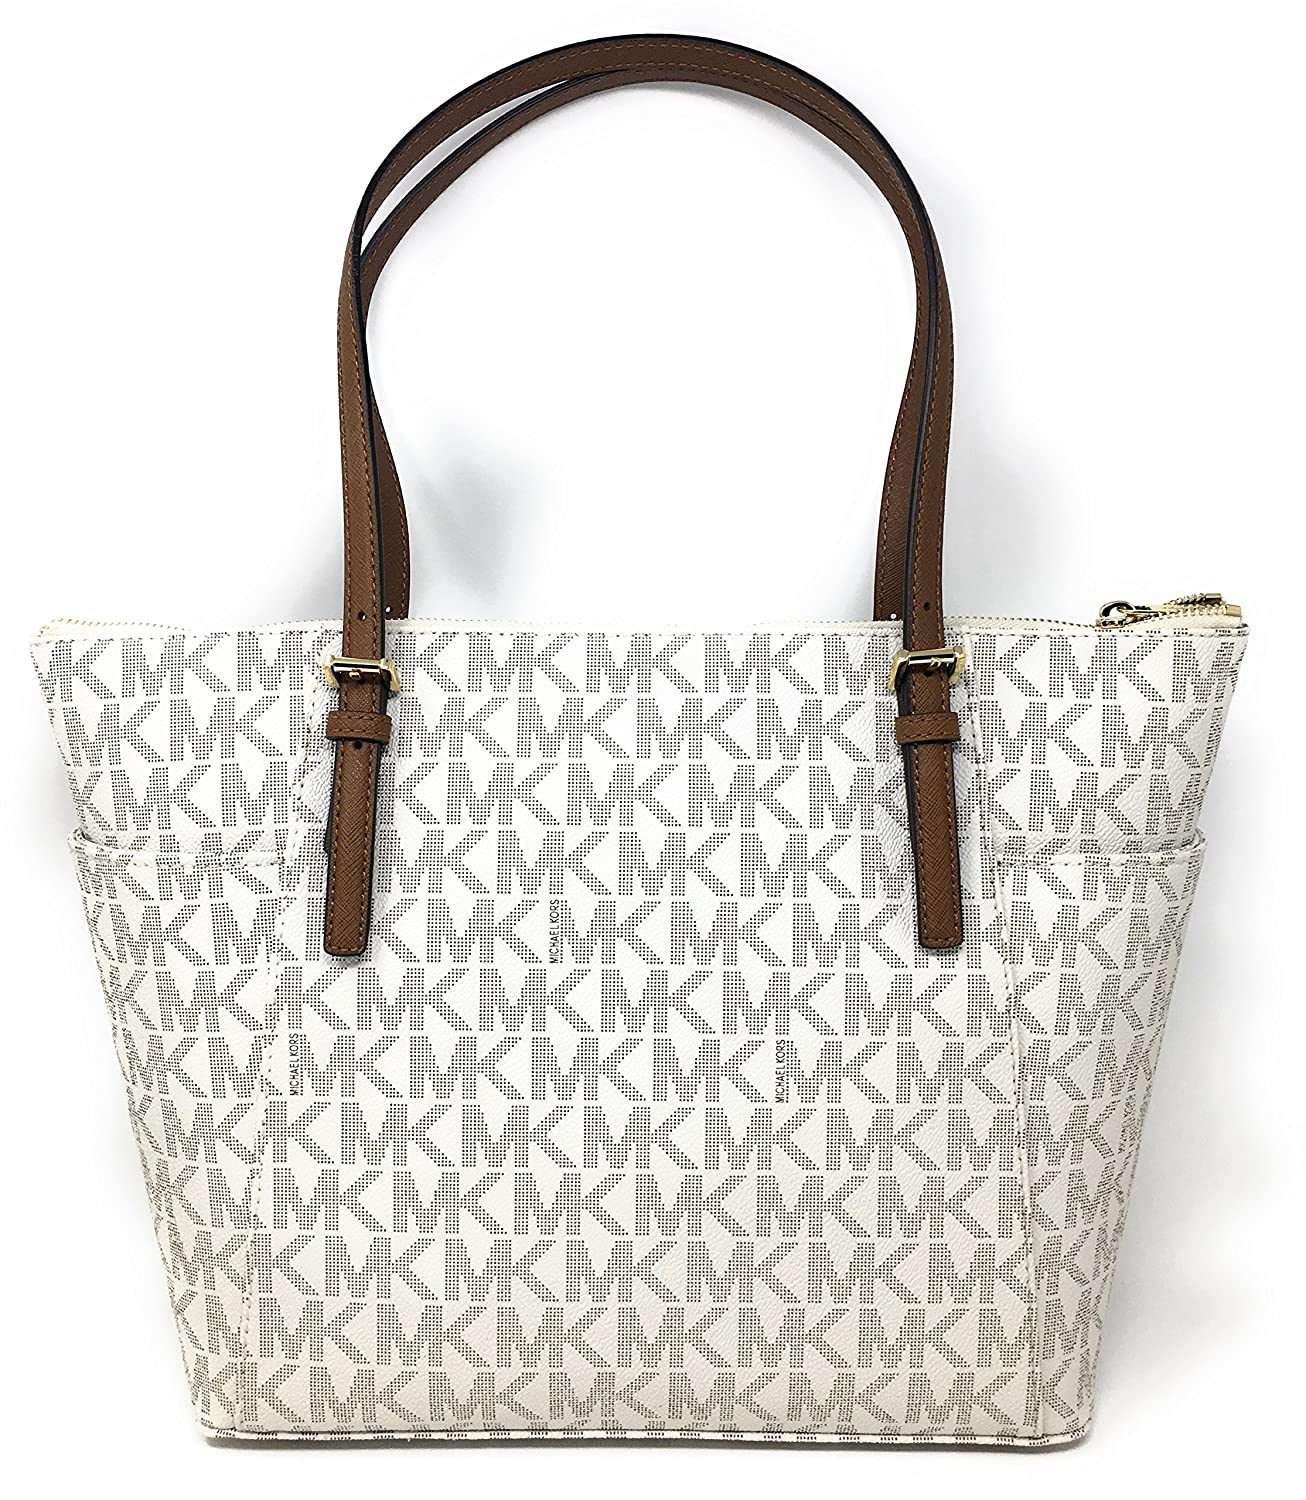 e6c60b628ad2 Amazon.com  Michael Kors Jet Set Item Large East West Signature Top Zip PVC  Tote (Vanilla   Luggage)  Watches